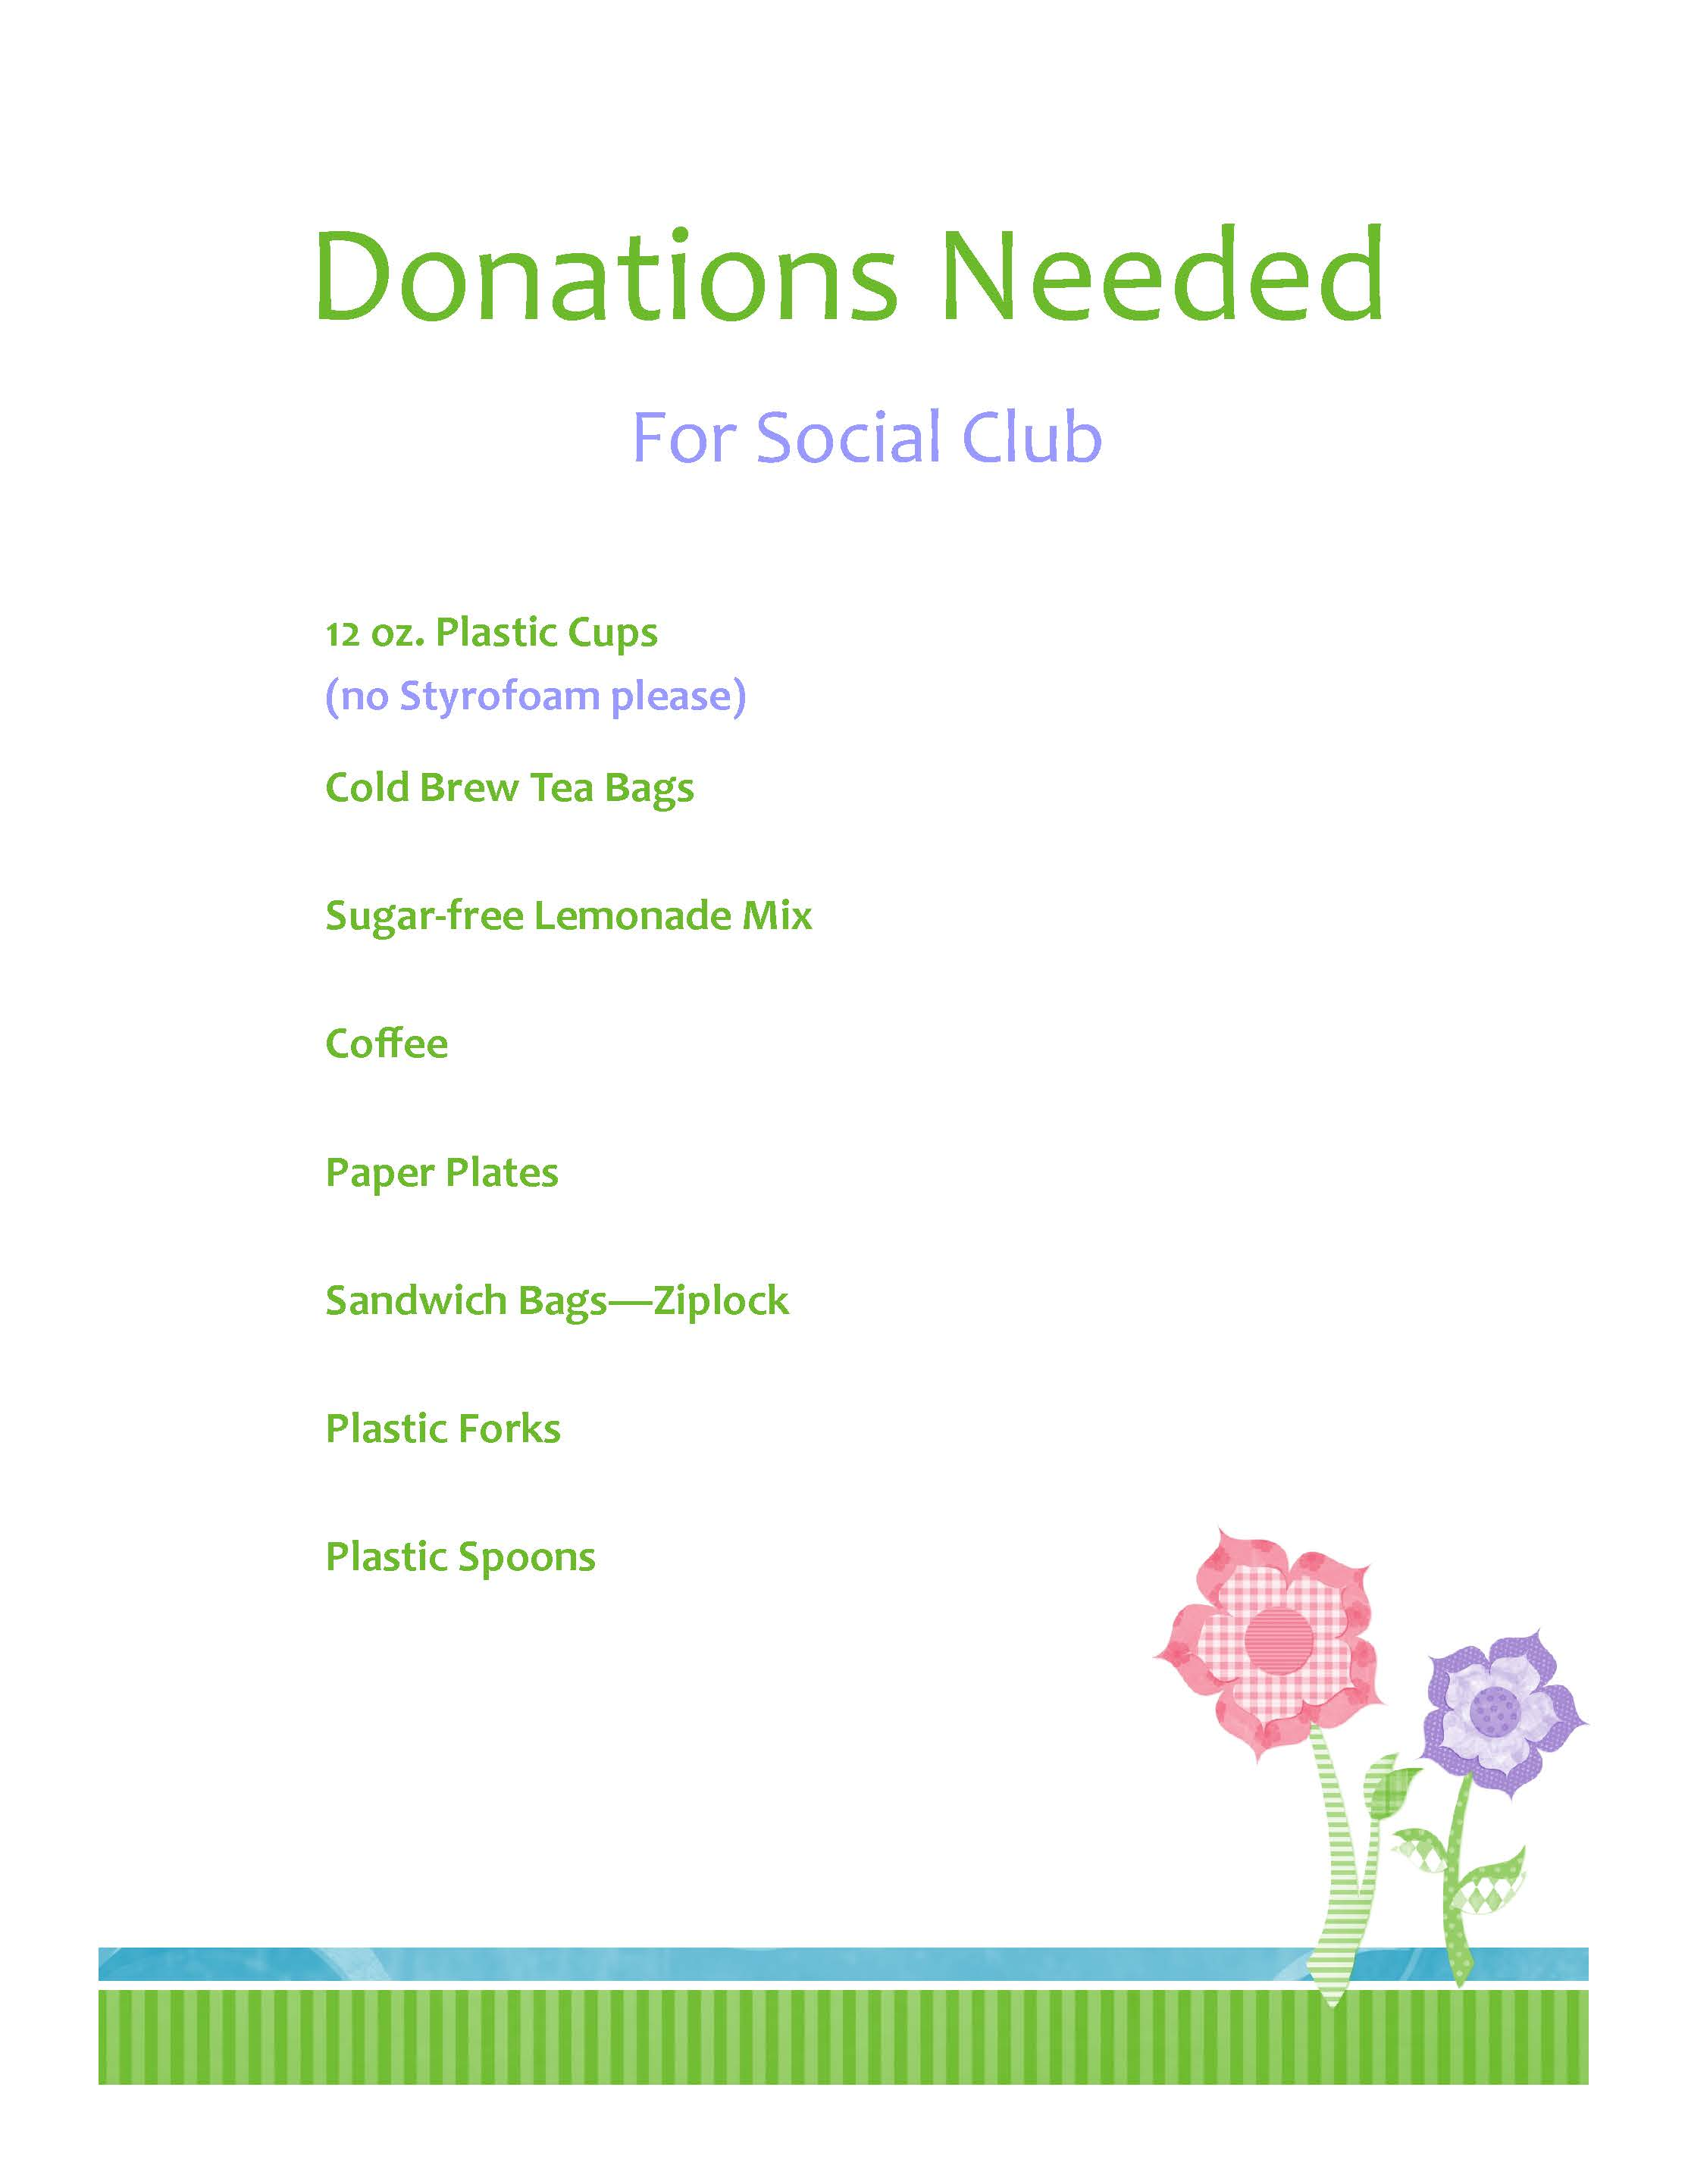 Announcement - Donations Needed for Social Club